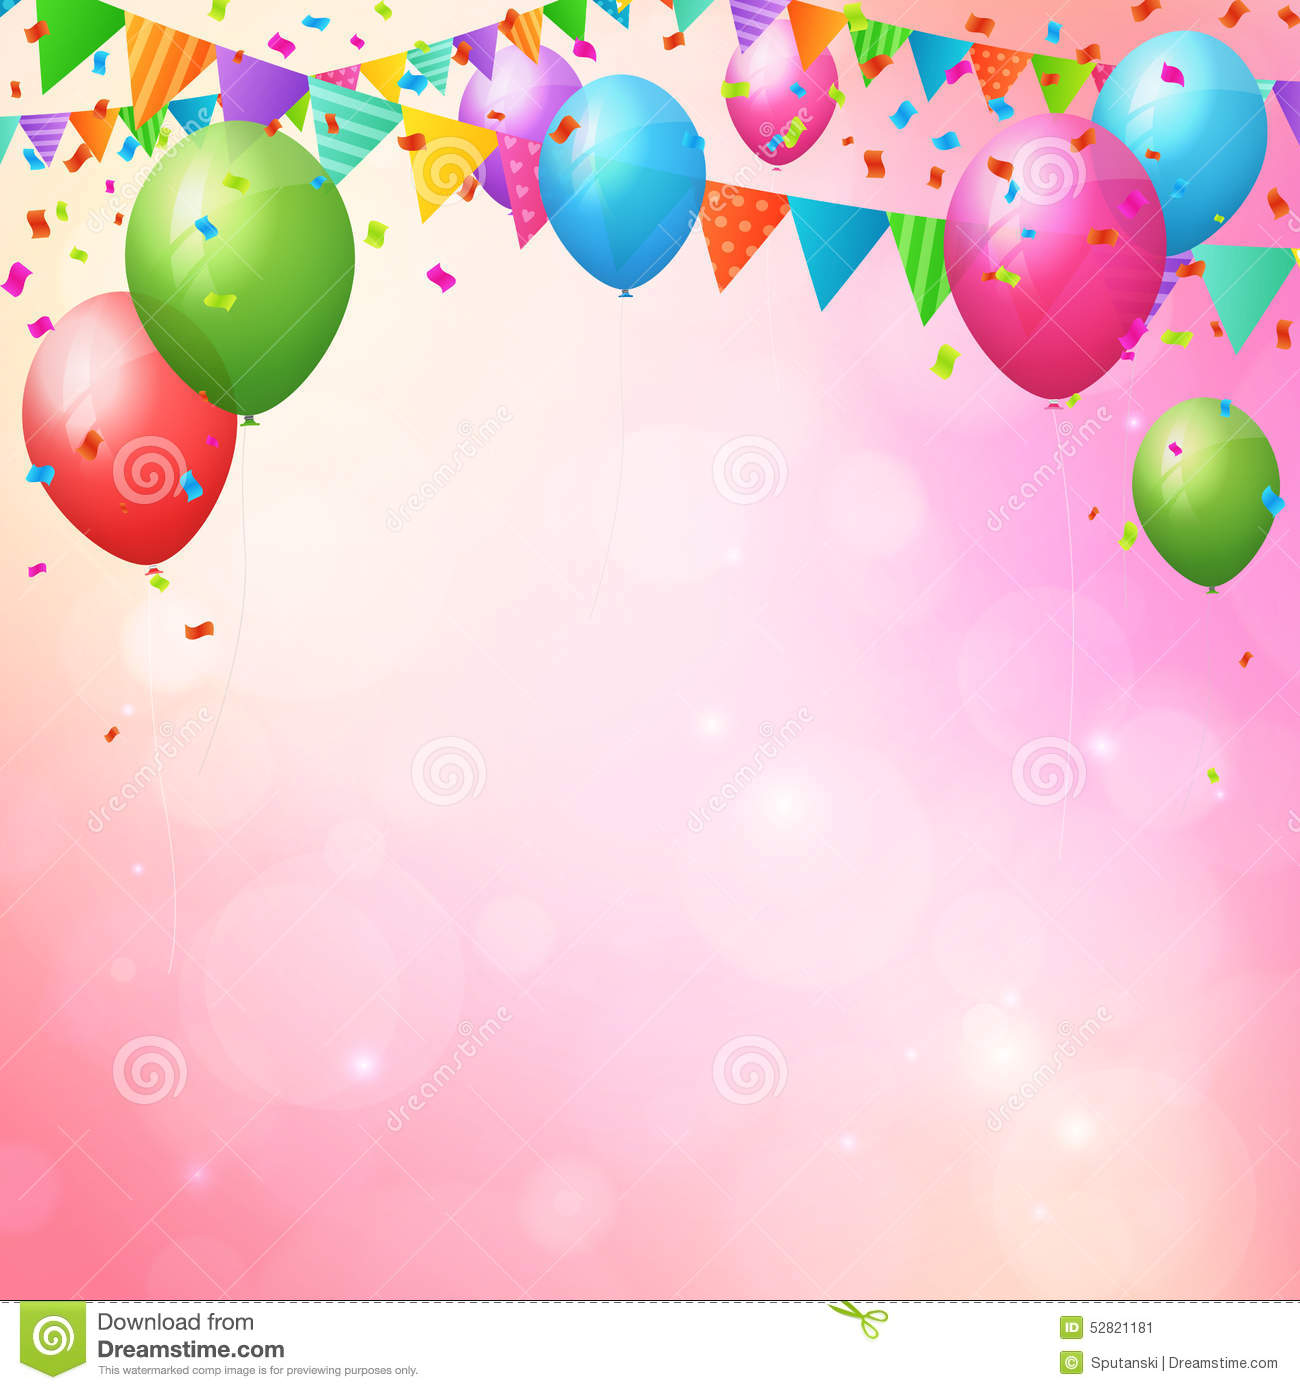 background images for birthday banner ; happy-birthday-background-balloons-flags-poster-layered-52821181